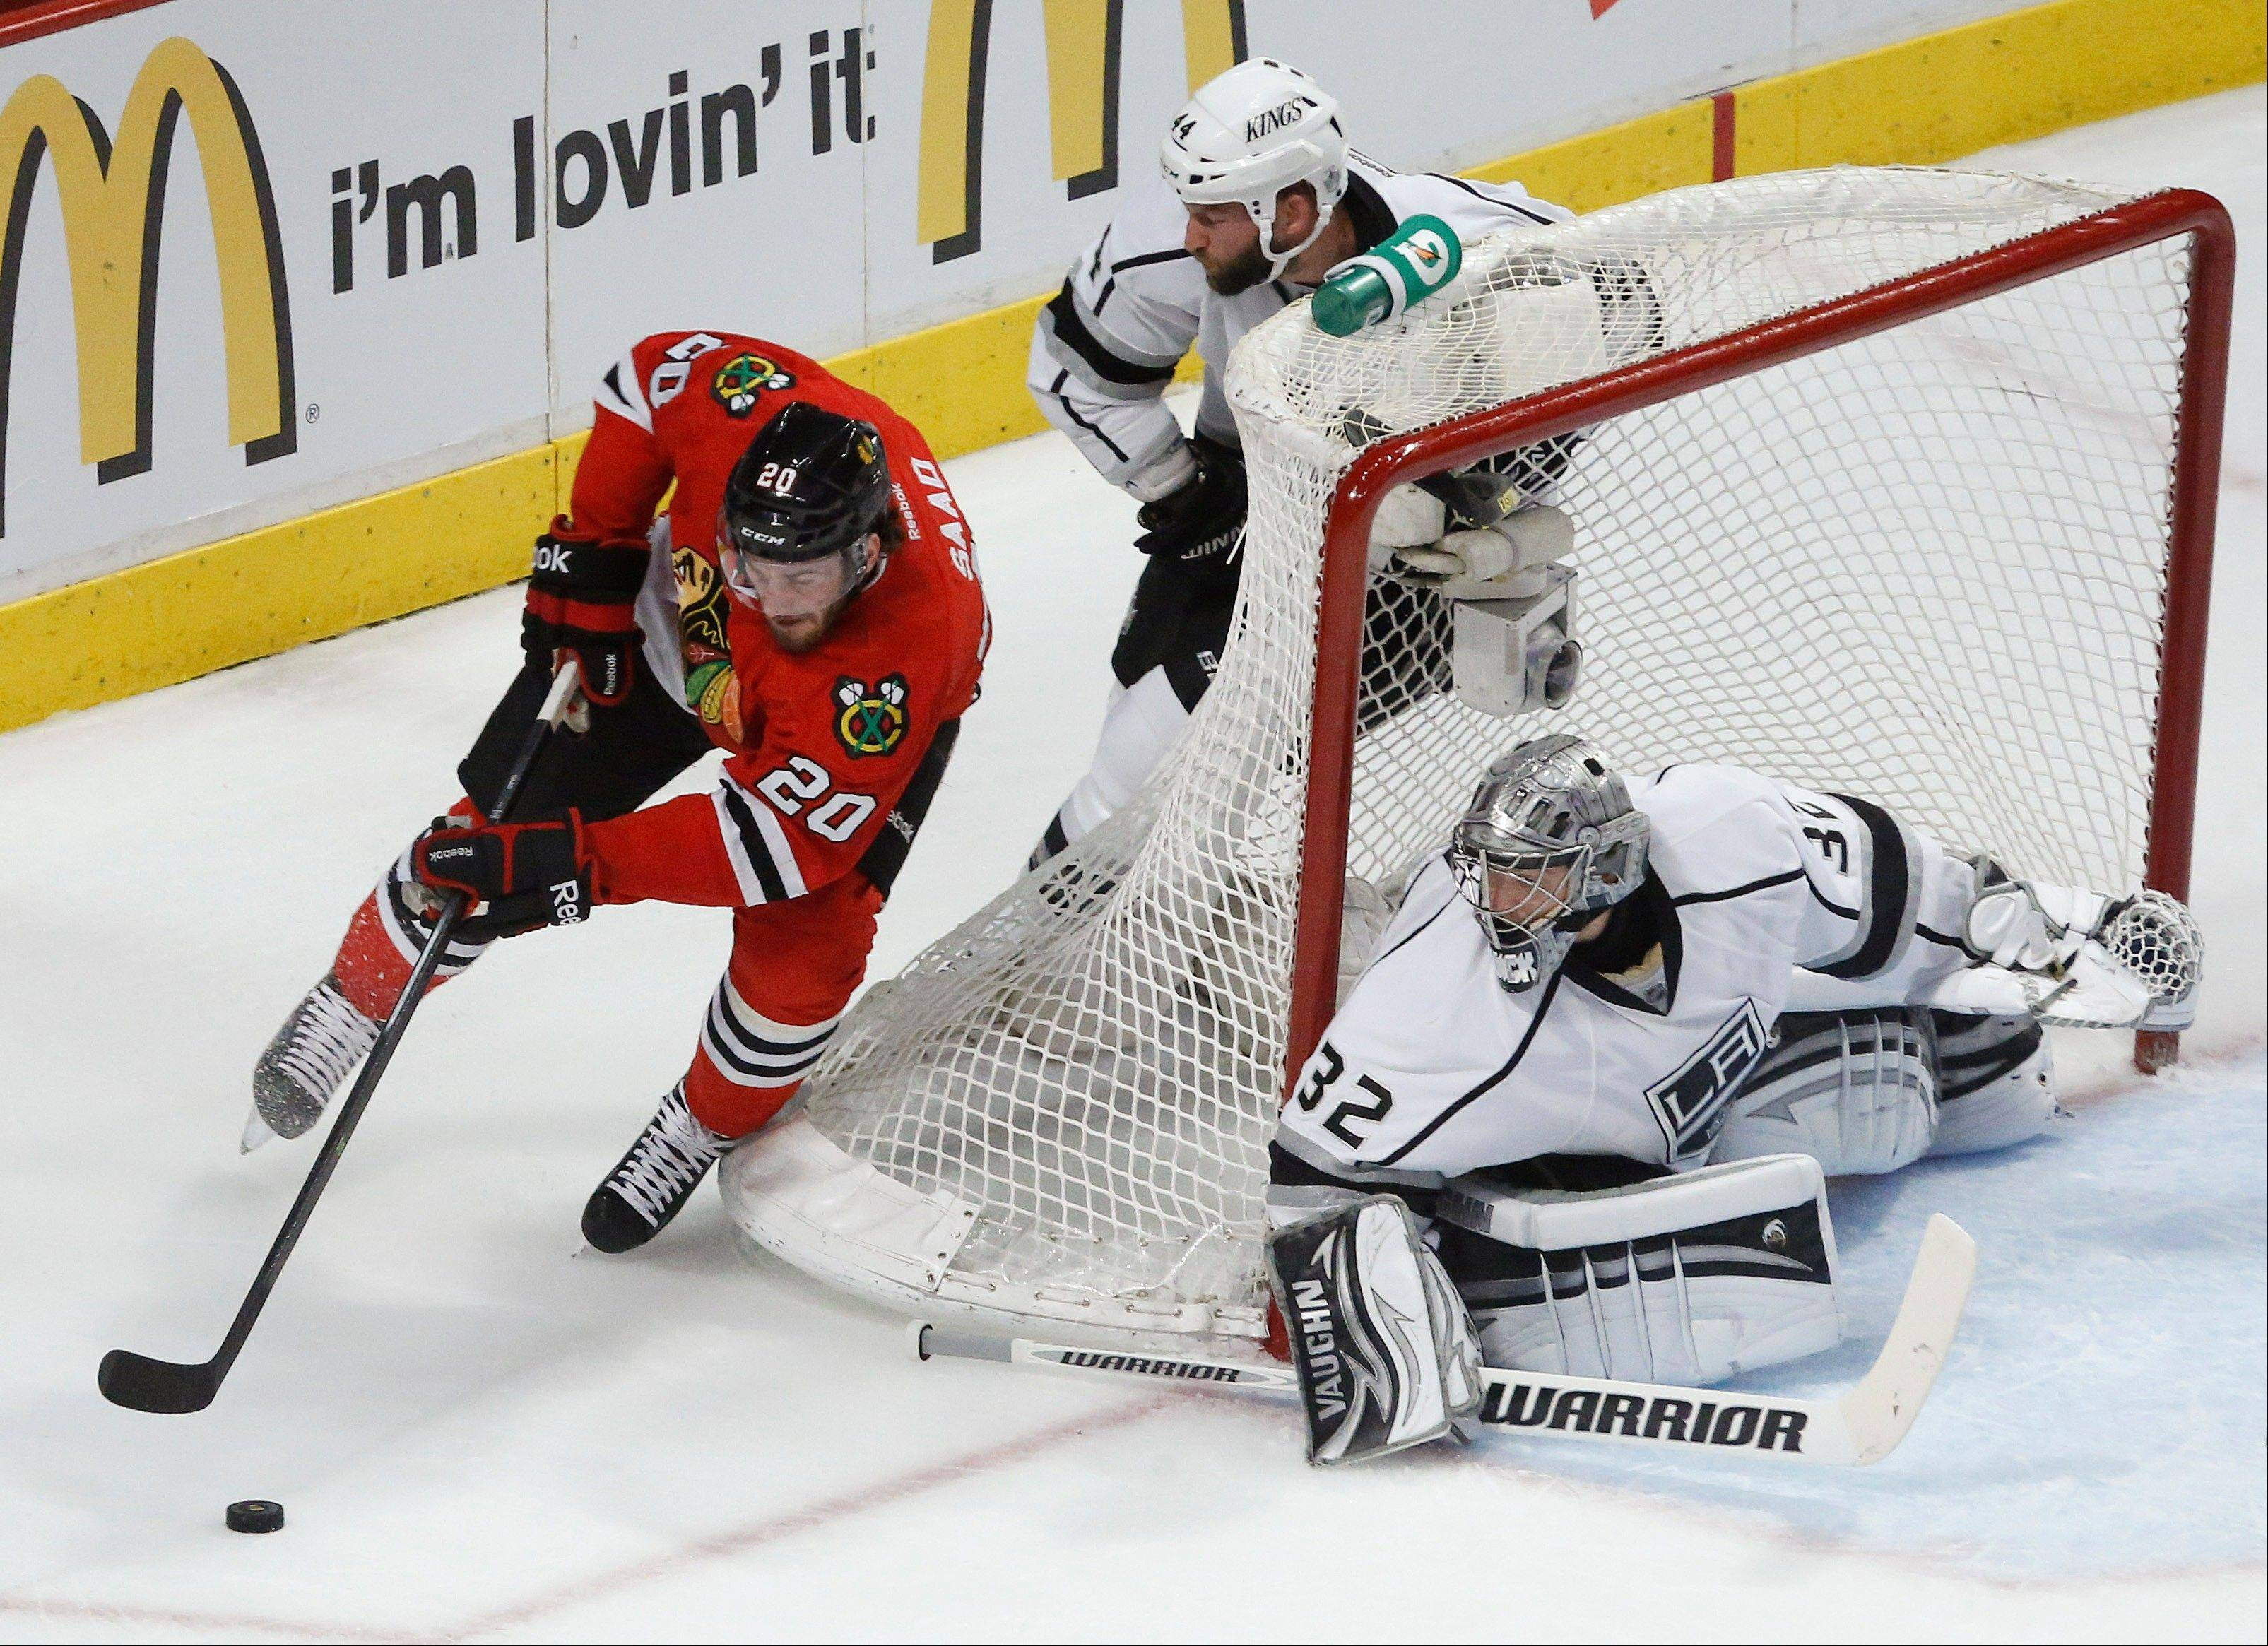 Chicago Blackhawks left wing Brandon Saad (20) looks to score against Los Angeles Kings goalie Jonathan Quick (32) in the first period in Game 1 of the NHL hockey Stanley Cup Western Conference finals Saturday, June 1, 2013, in Chicago.